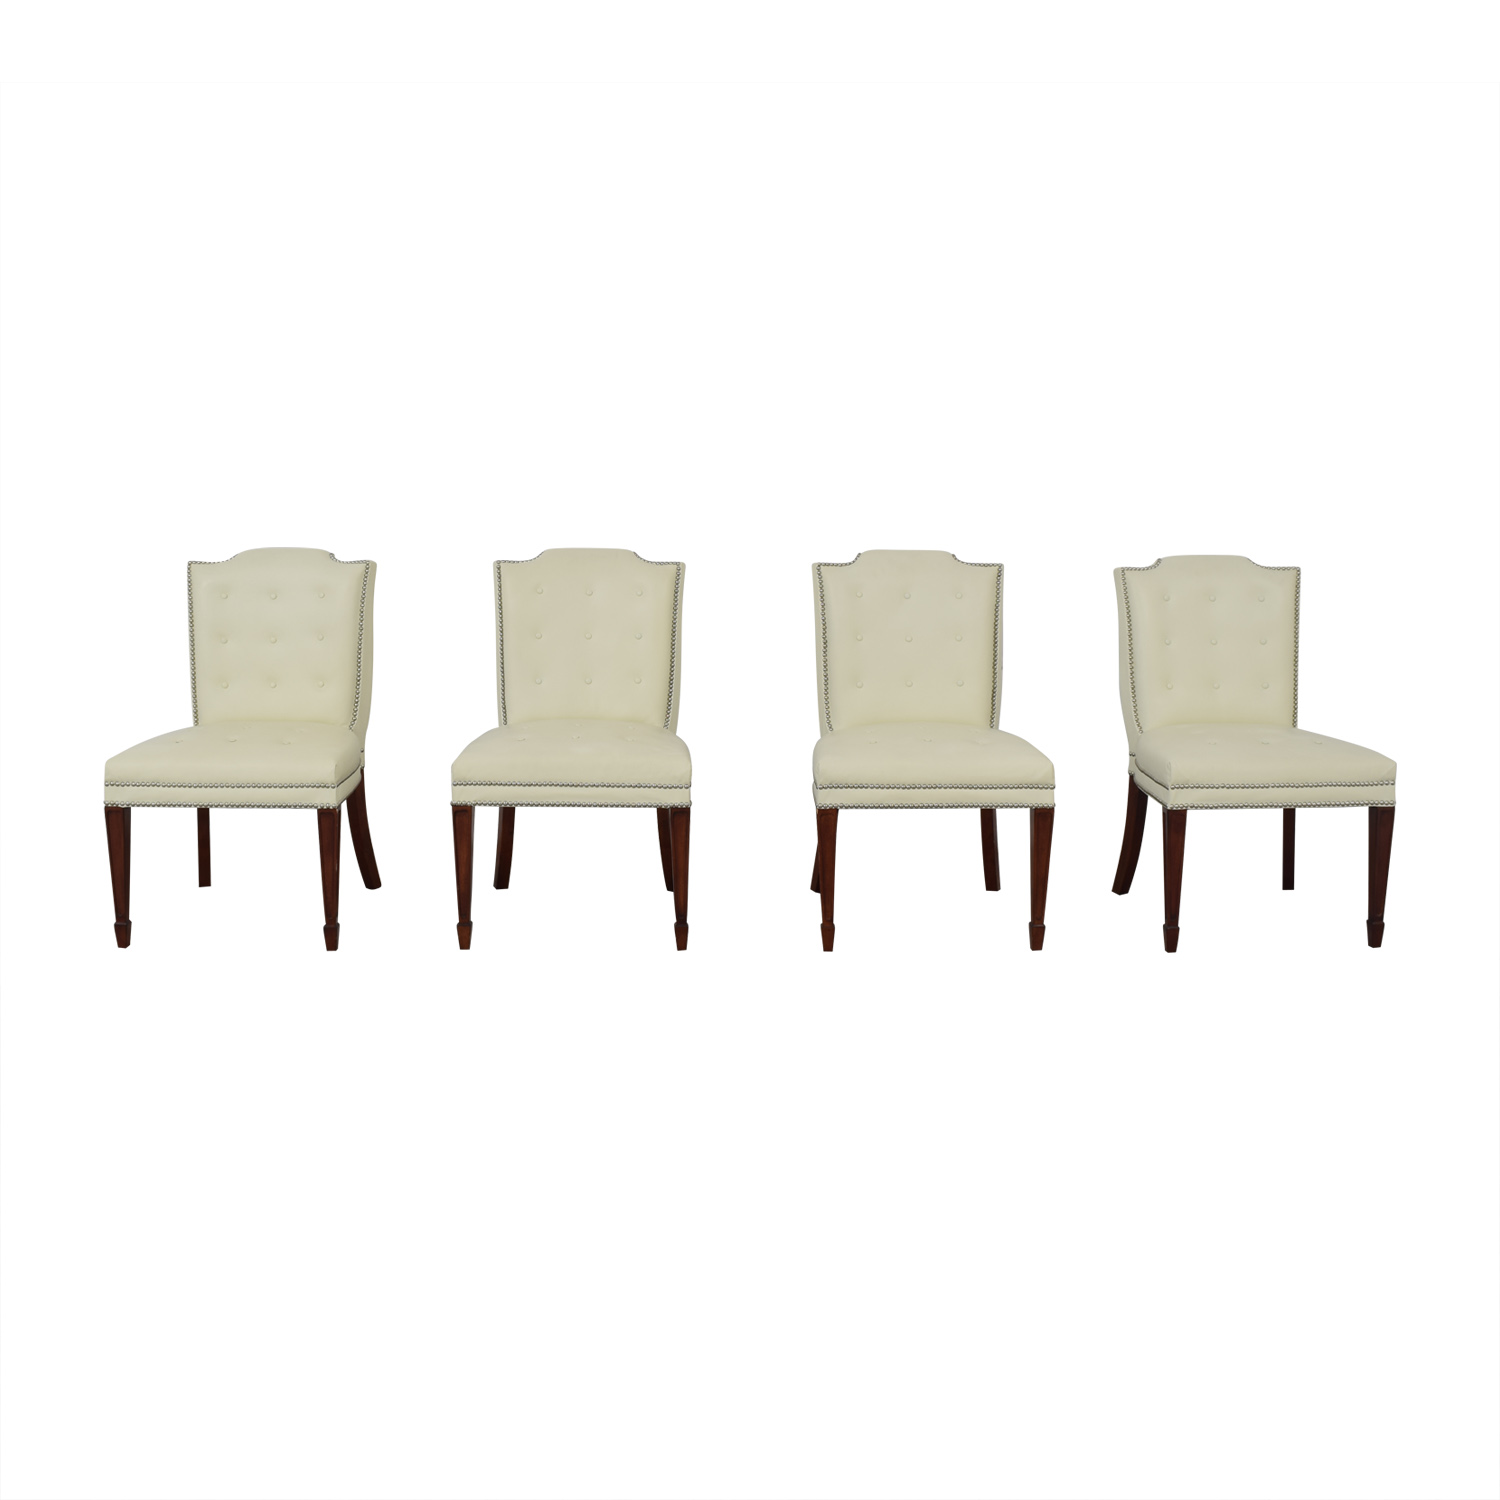 buy Global Views Atlanta Dining Chairs Global Views Chairs